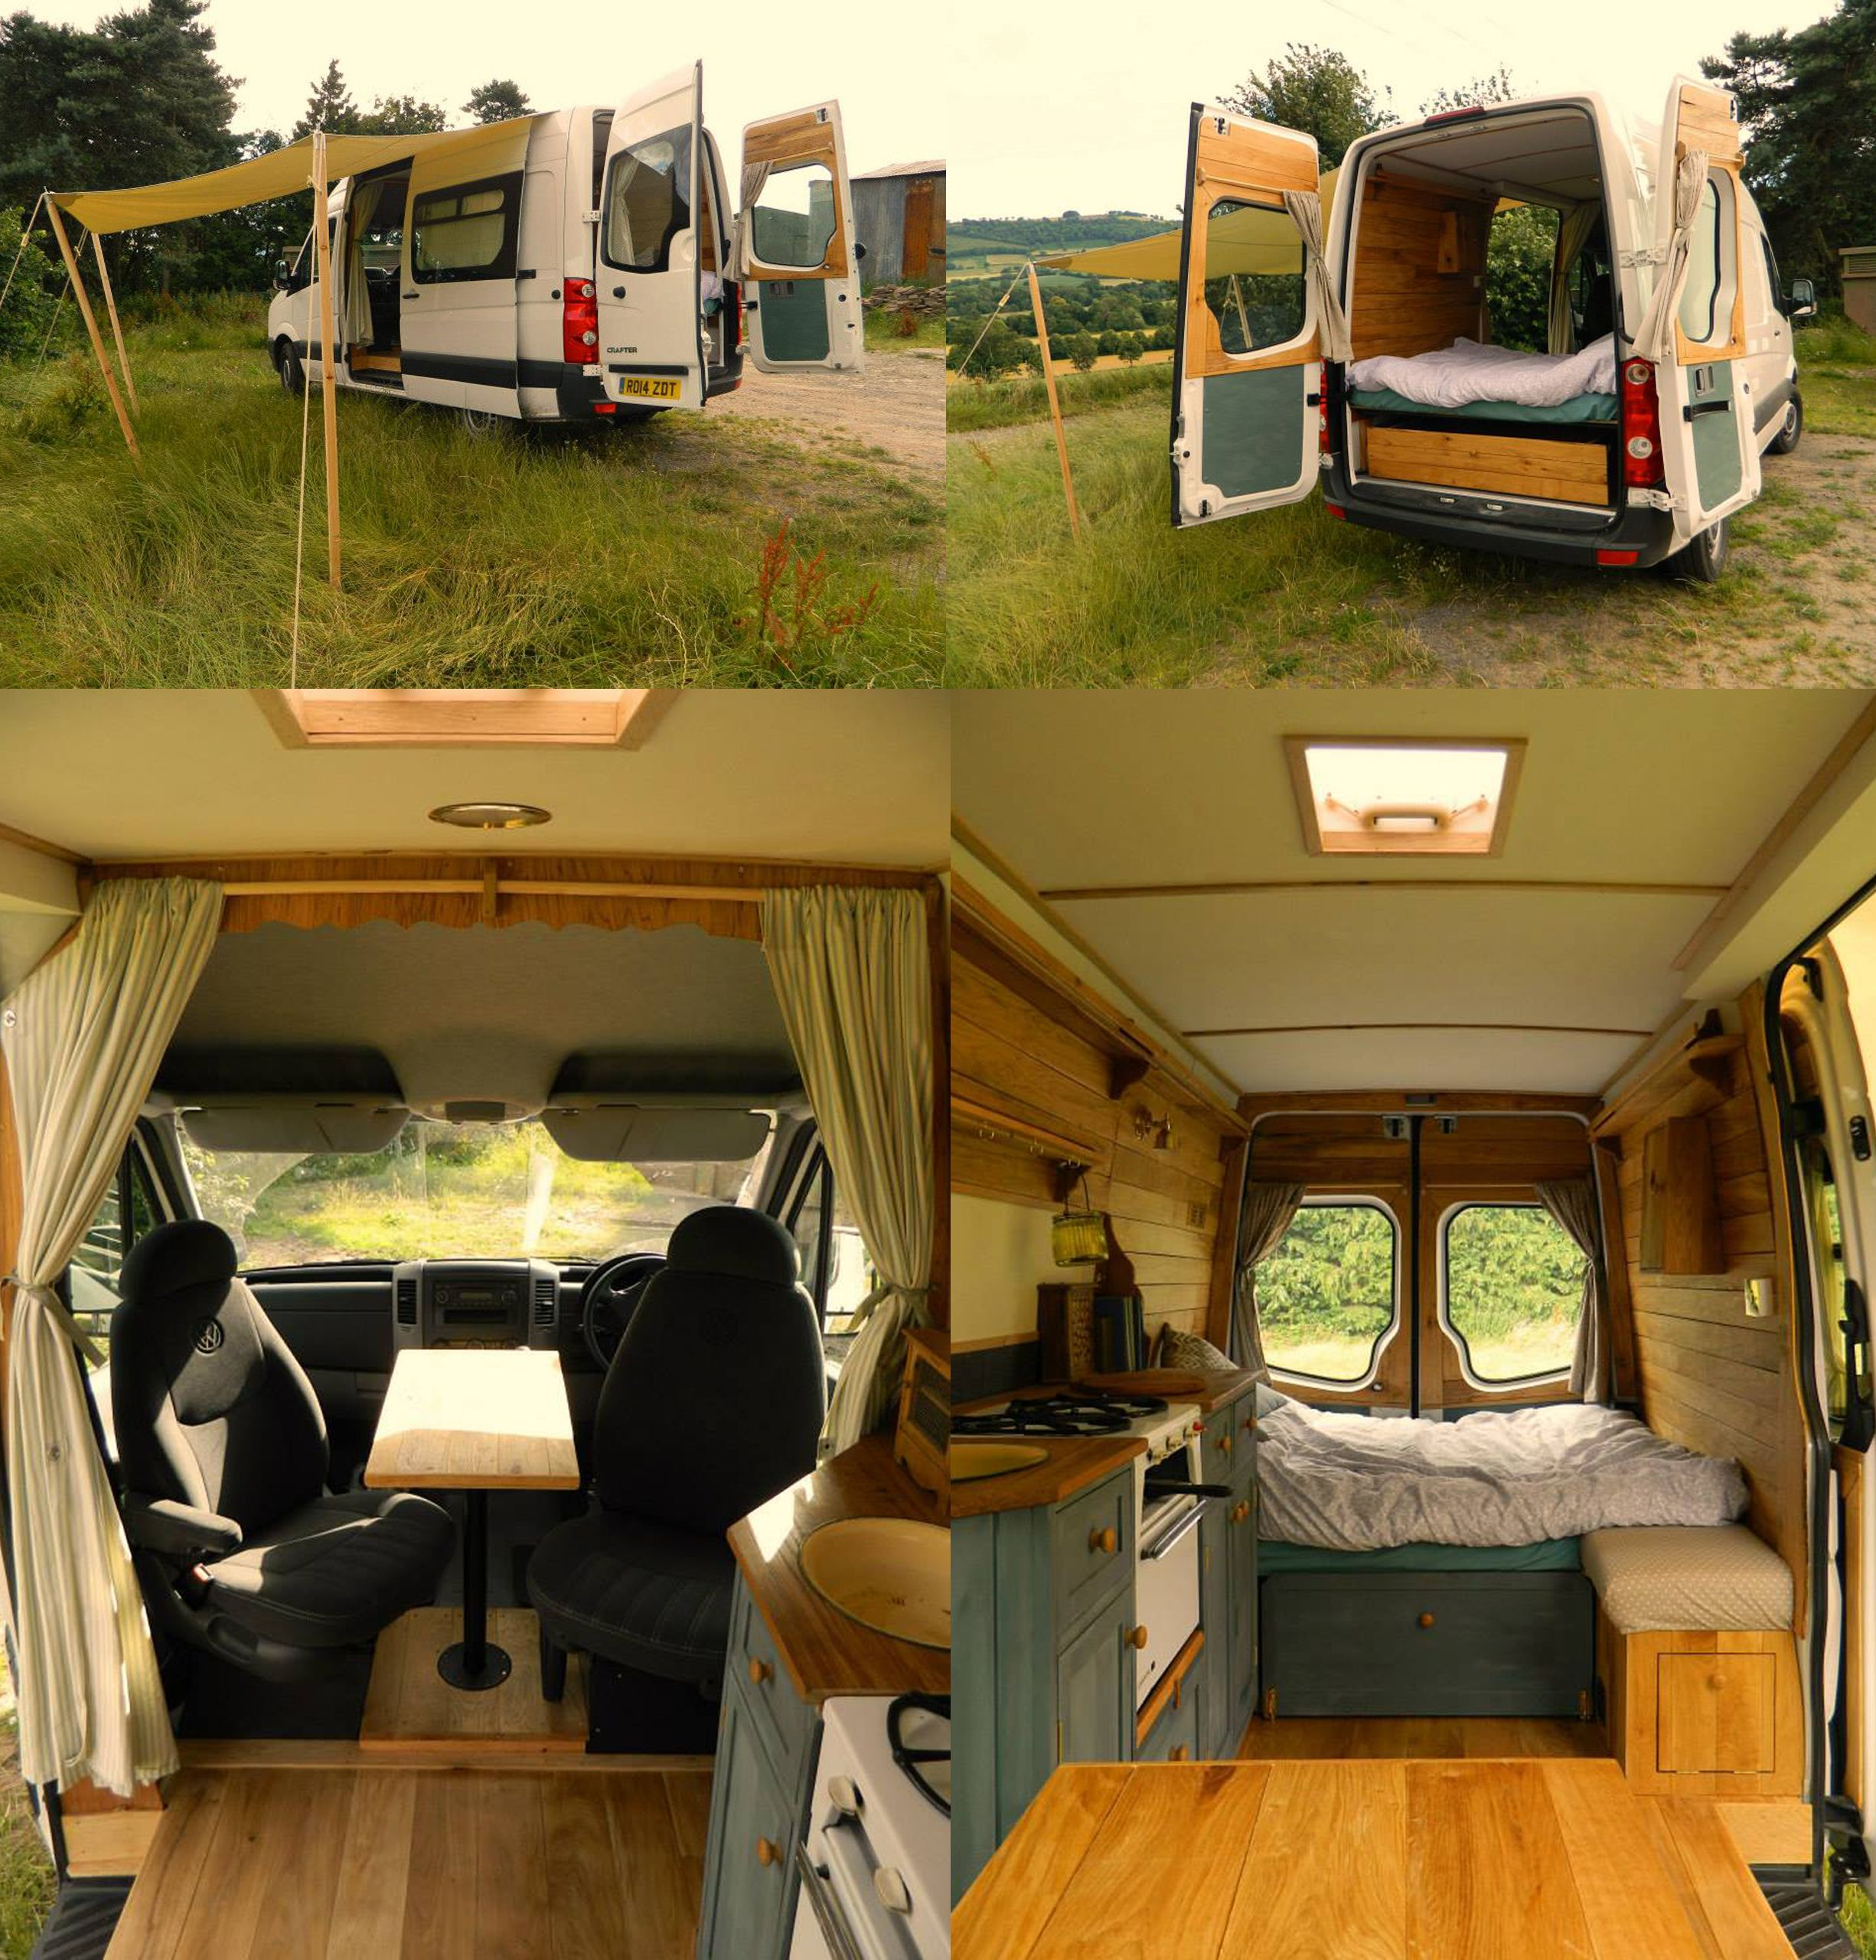 pin von sergei paramonov auf minicampers camper van. Black Bedroom Furniture Sets. Home Design Ideas